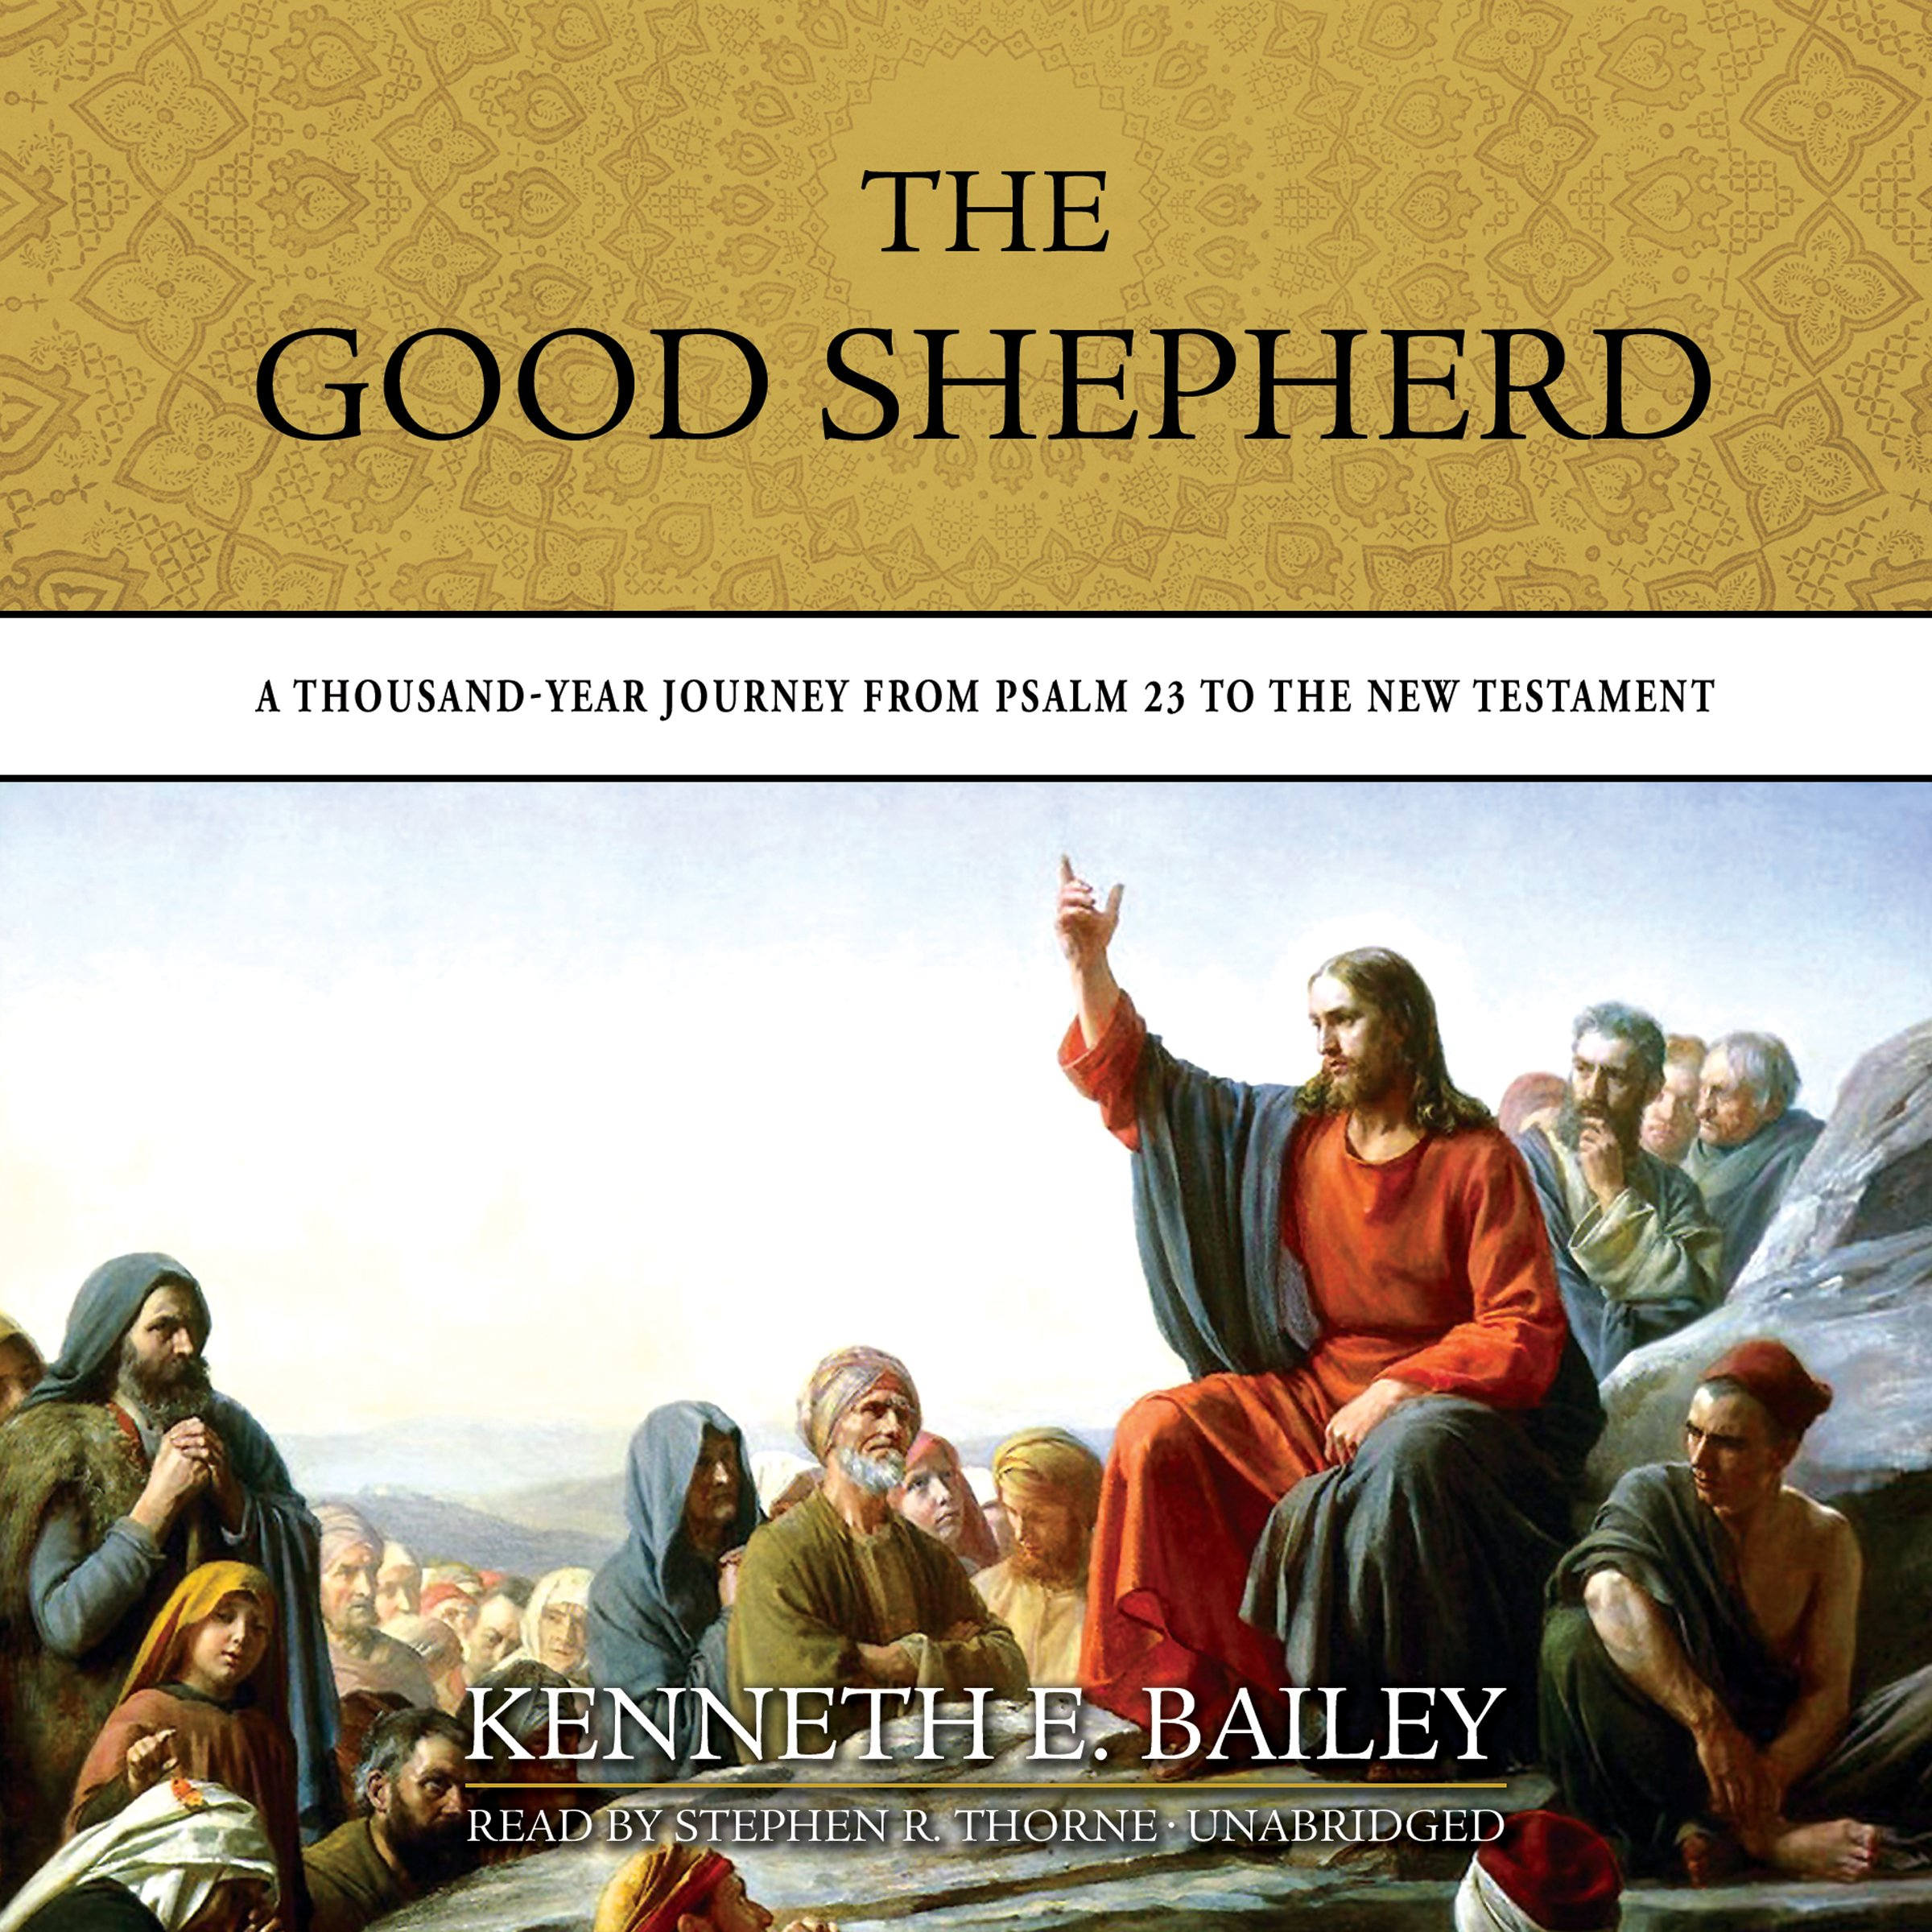 The Good Shepherd: A Thousandyear Journey From Psalm 23 To The New  Testament: Kenneth E Bailey: 9781481521284: Amazon: Books